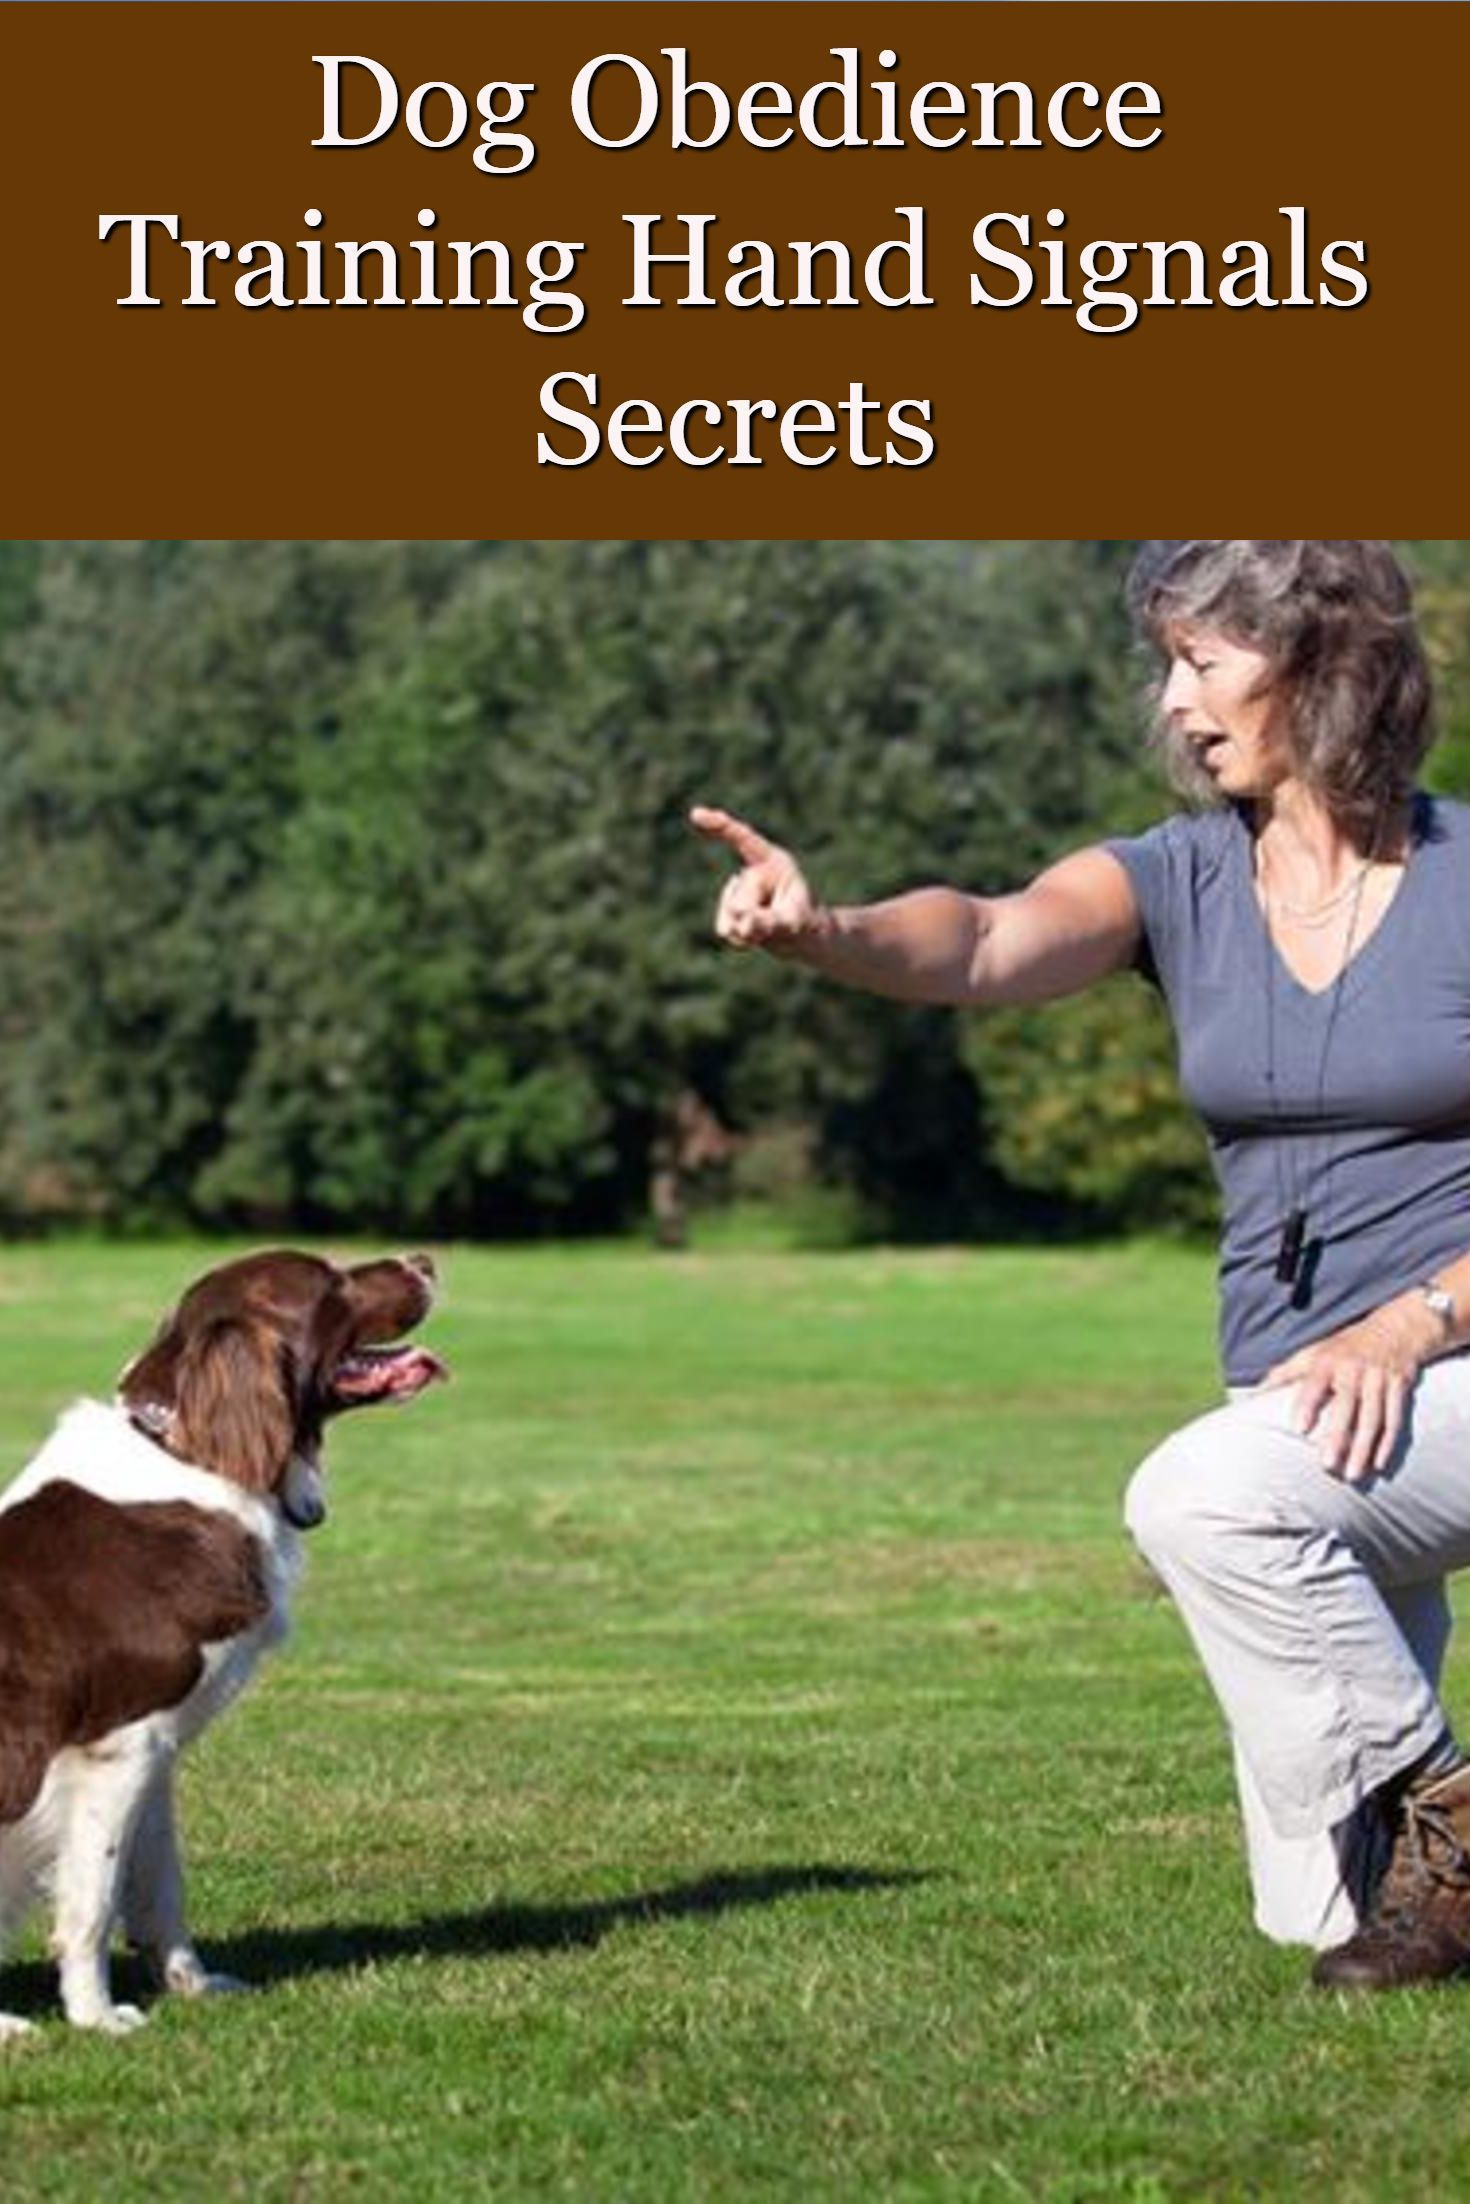 Dog Obedience Training Hand Signals Secrets Dog Obedience Hand